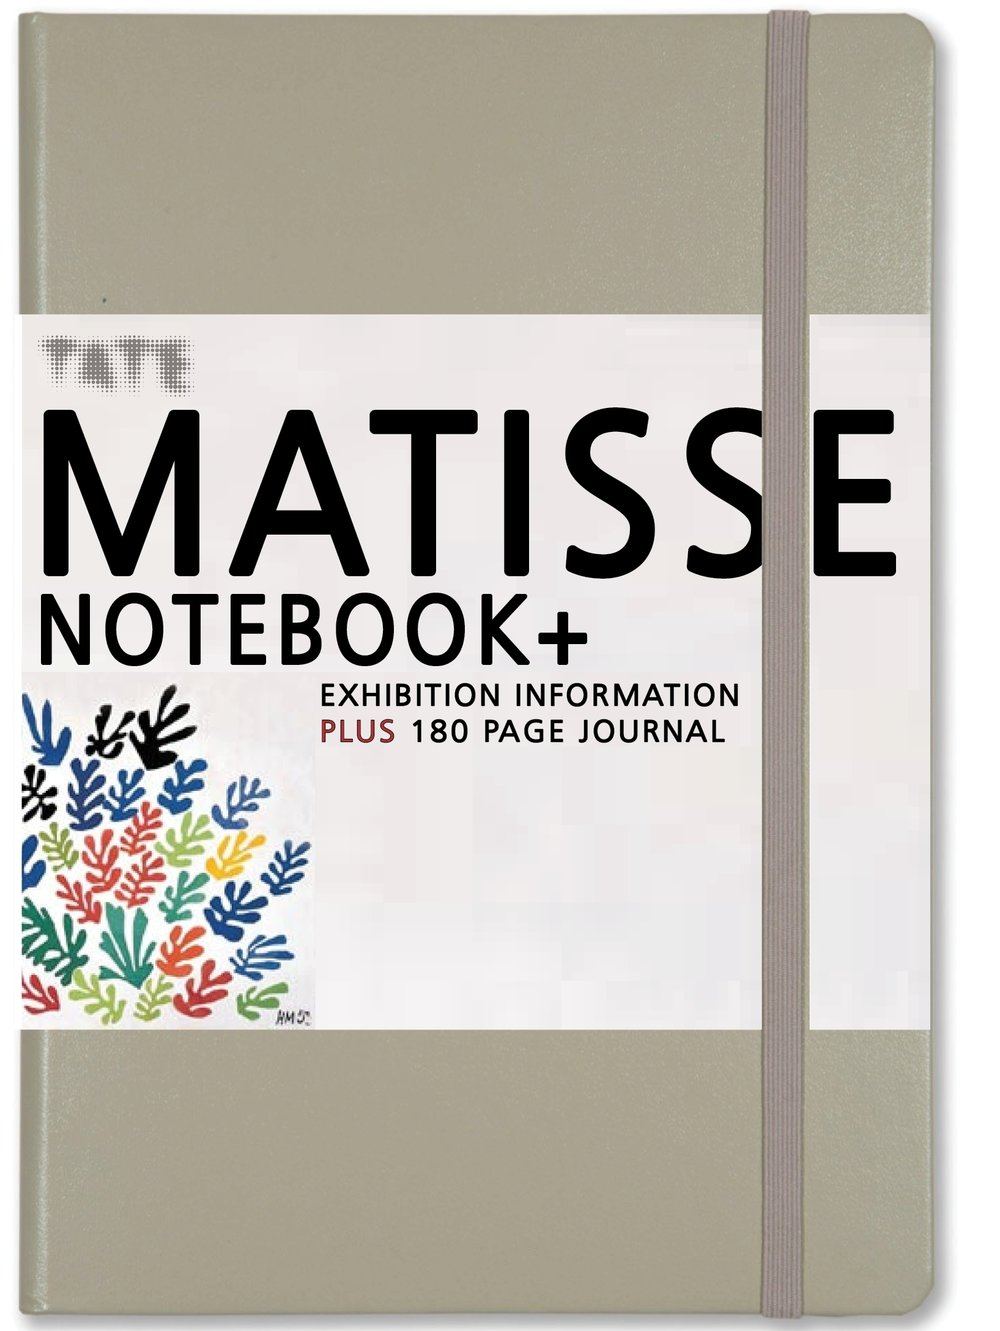 Gallery NOTEBOOK+  featuring a wraparound guide to Matisse's work plus a 190 pages of plain paper